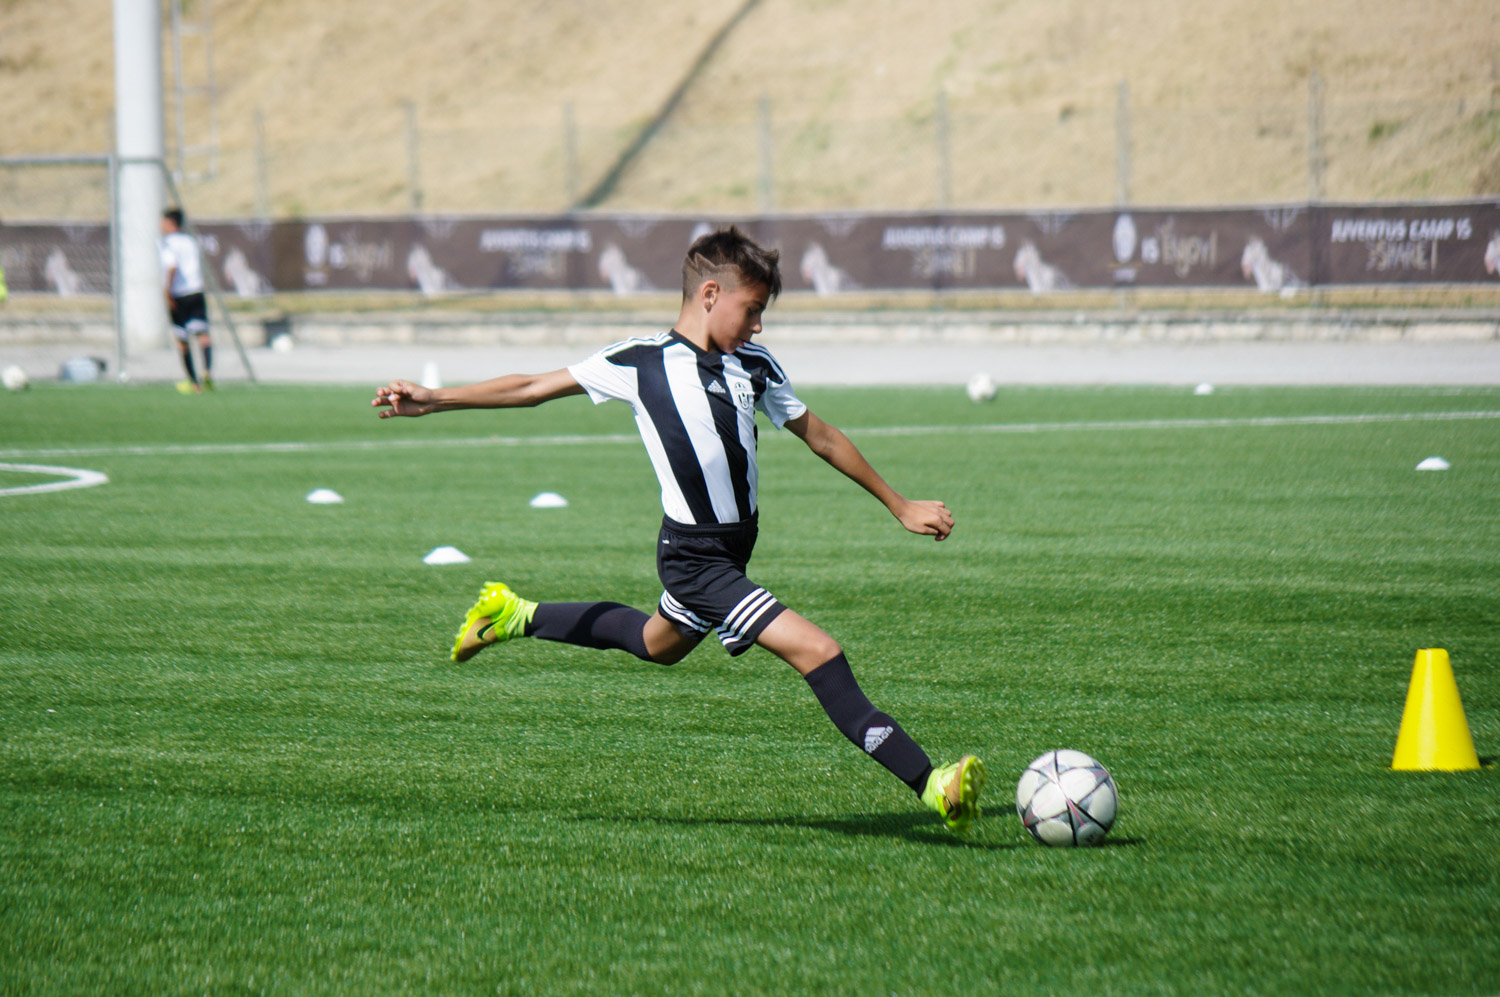 Protetto: Juventus Summer Camp